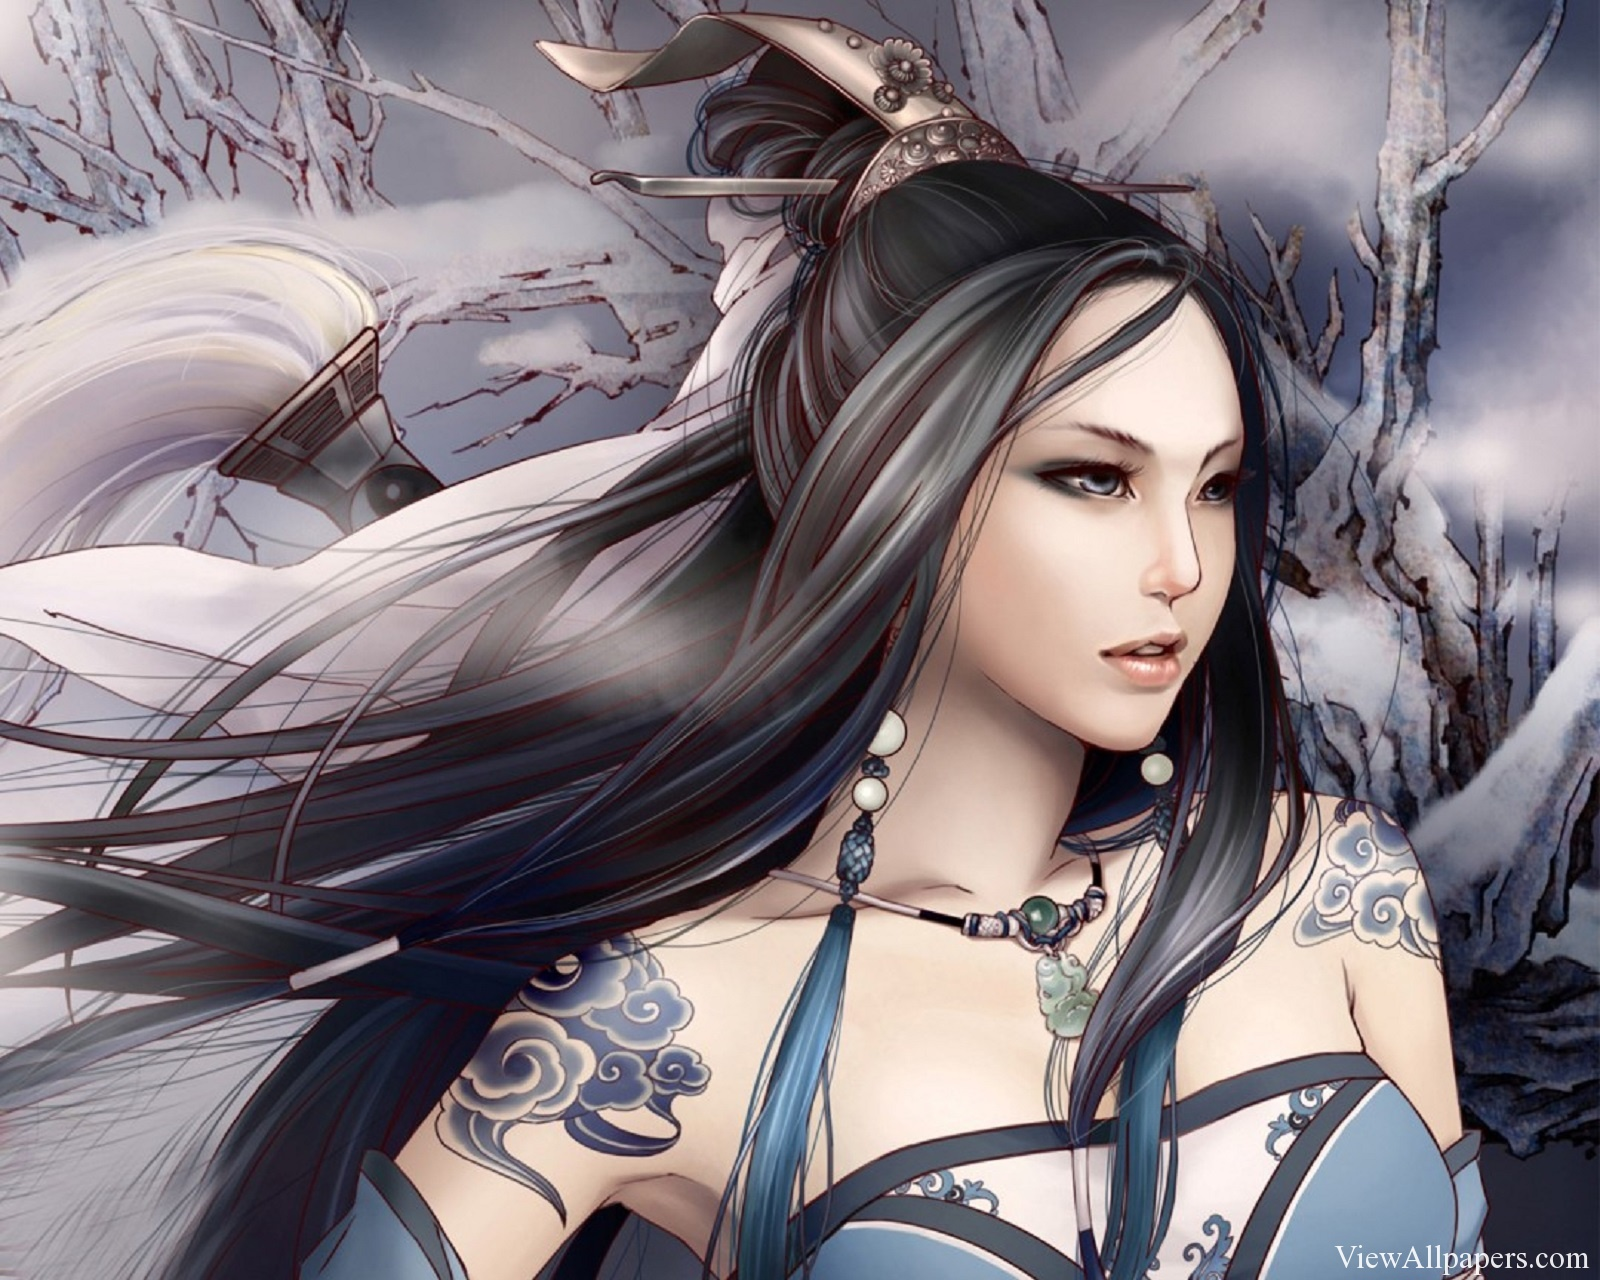 Anime Beauty Girl Warrior Wallpaper Anime HD Wallpapers 1600x1280